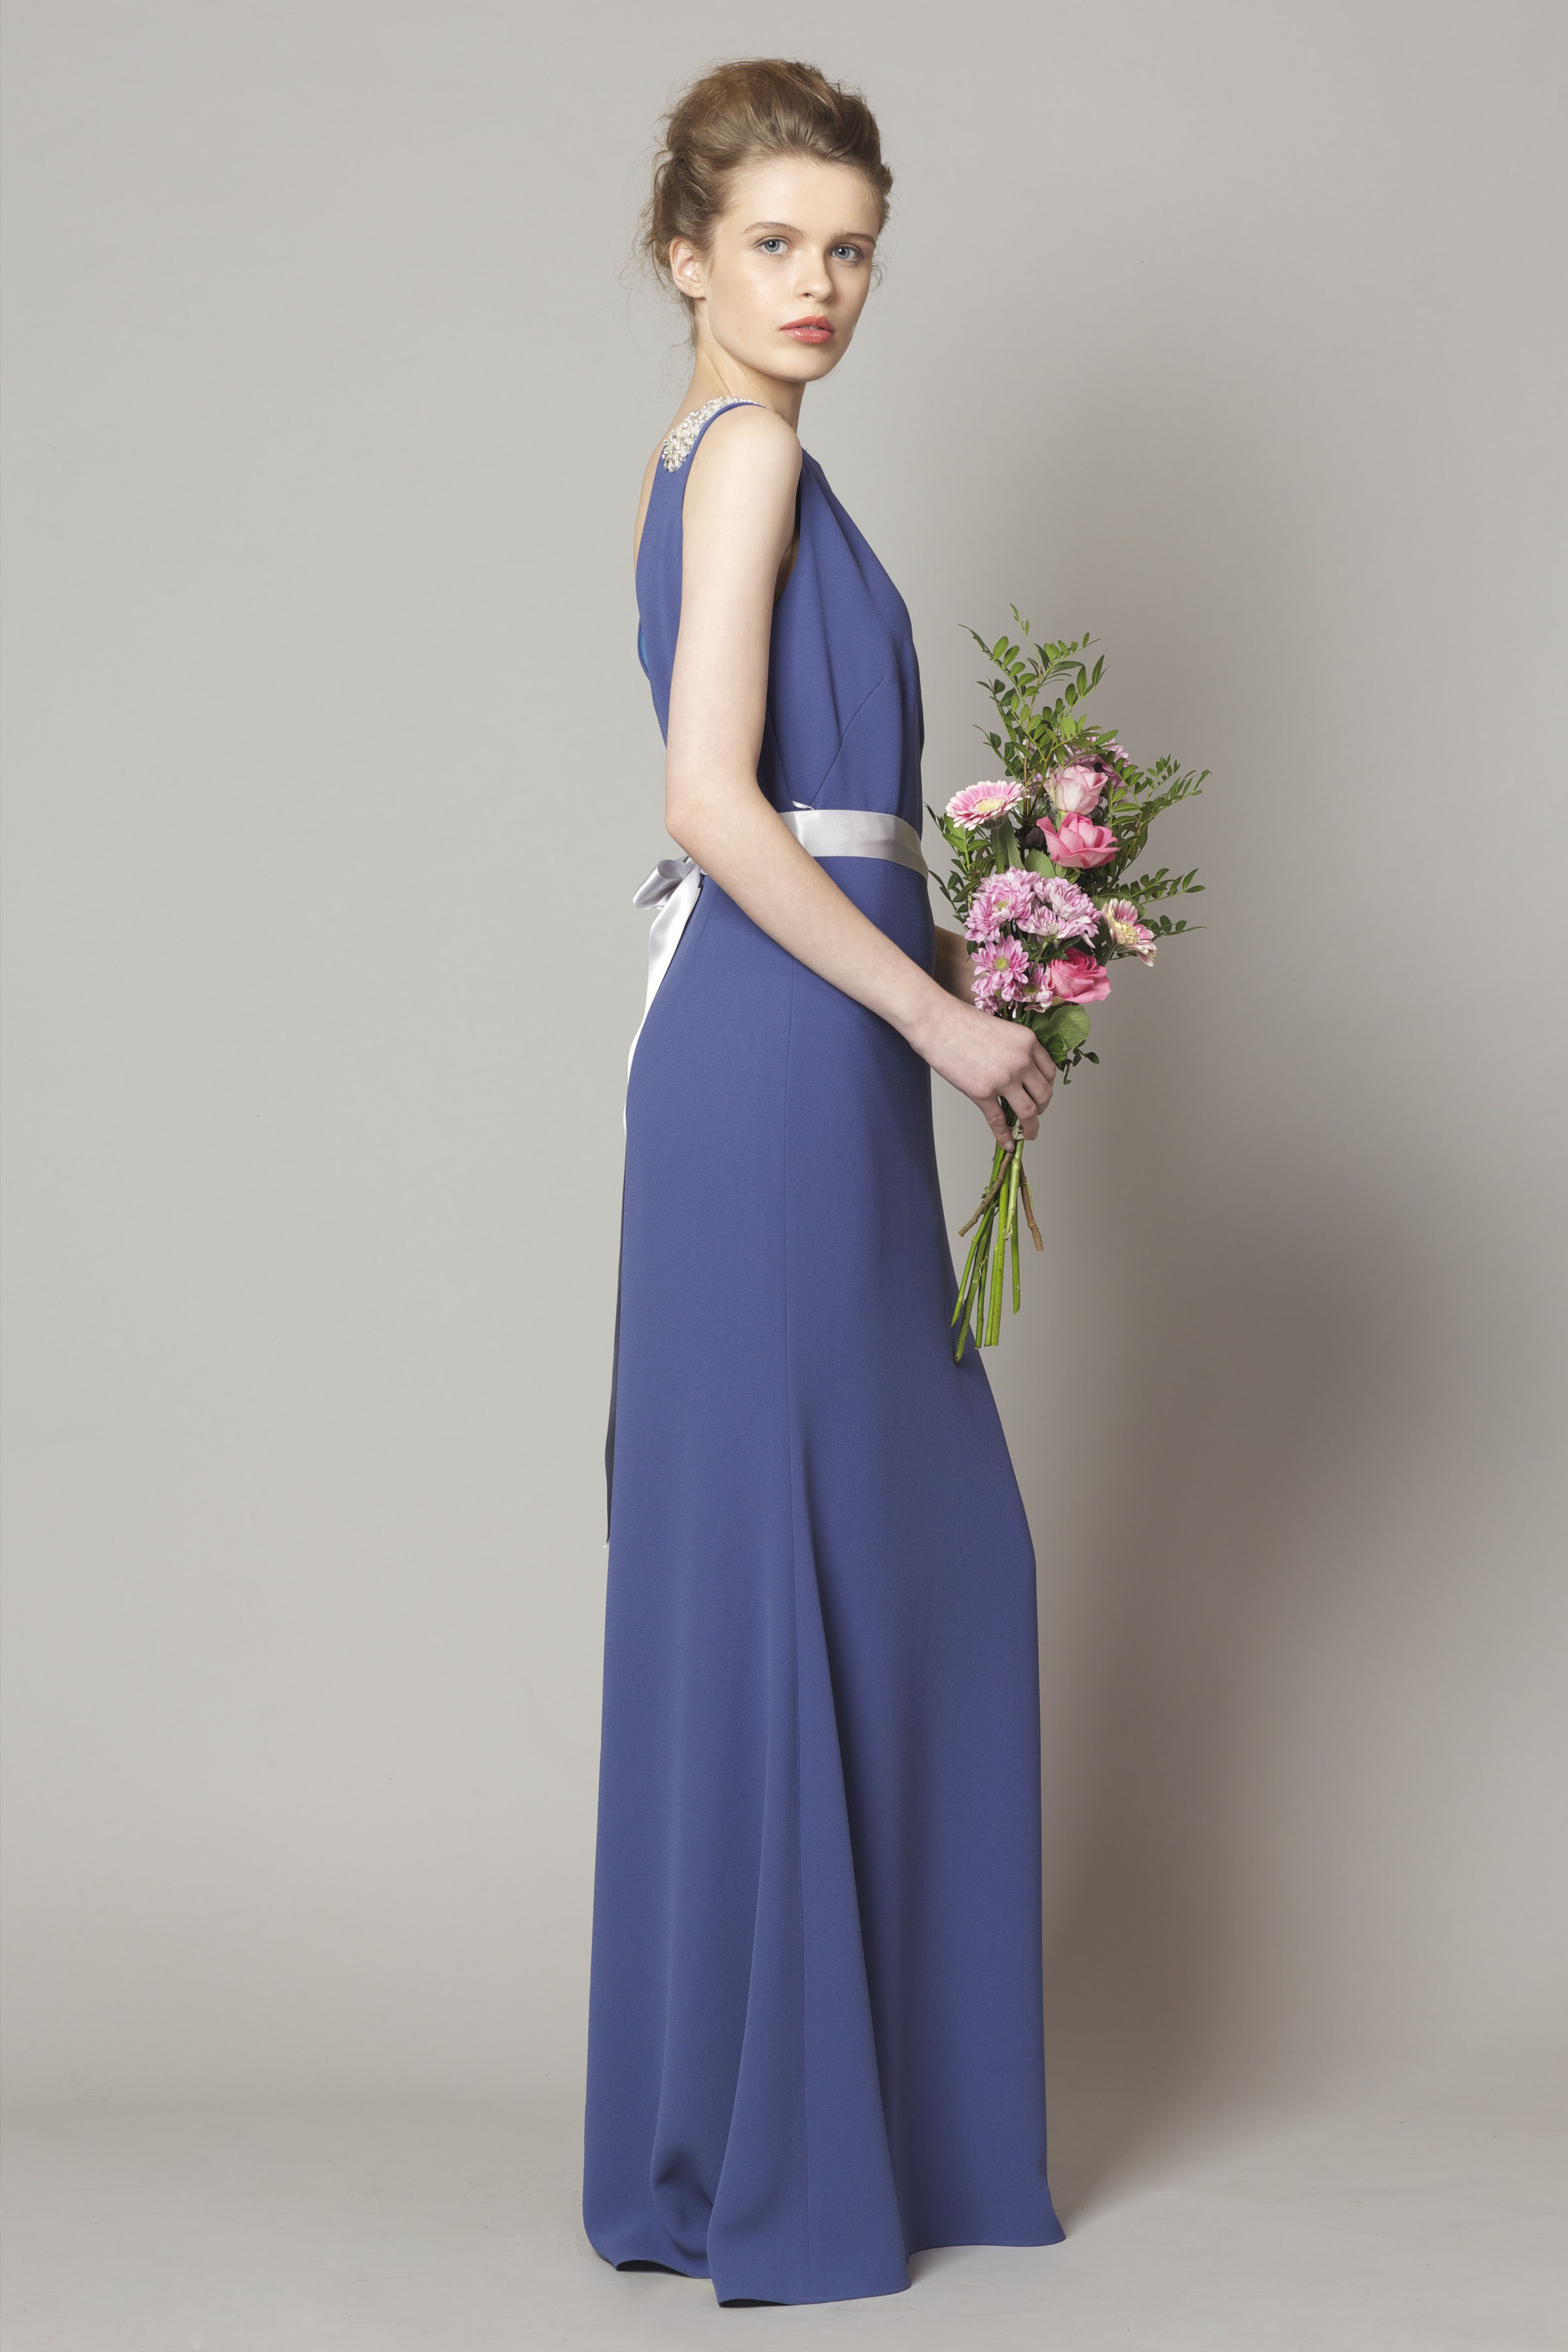 b368feafd1fe2 style DC1178 Aegan Blue - Bridesmaid Evening   Debs Dresses from ...